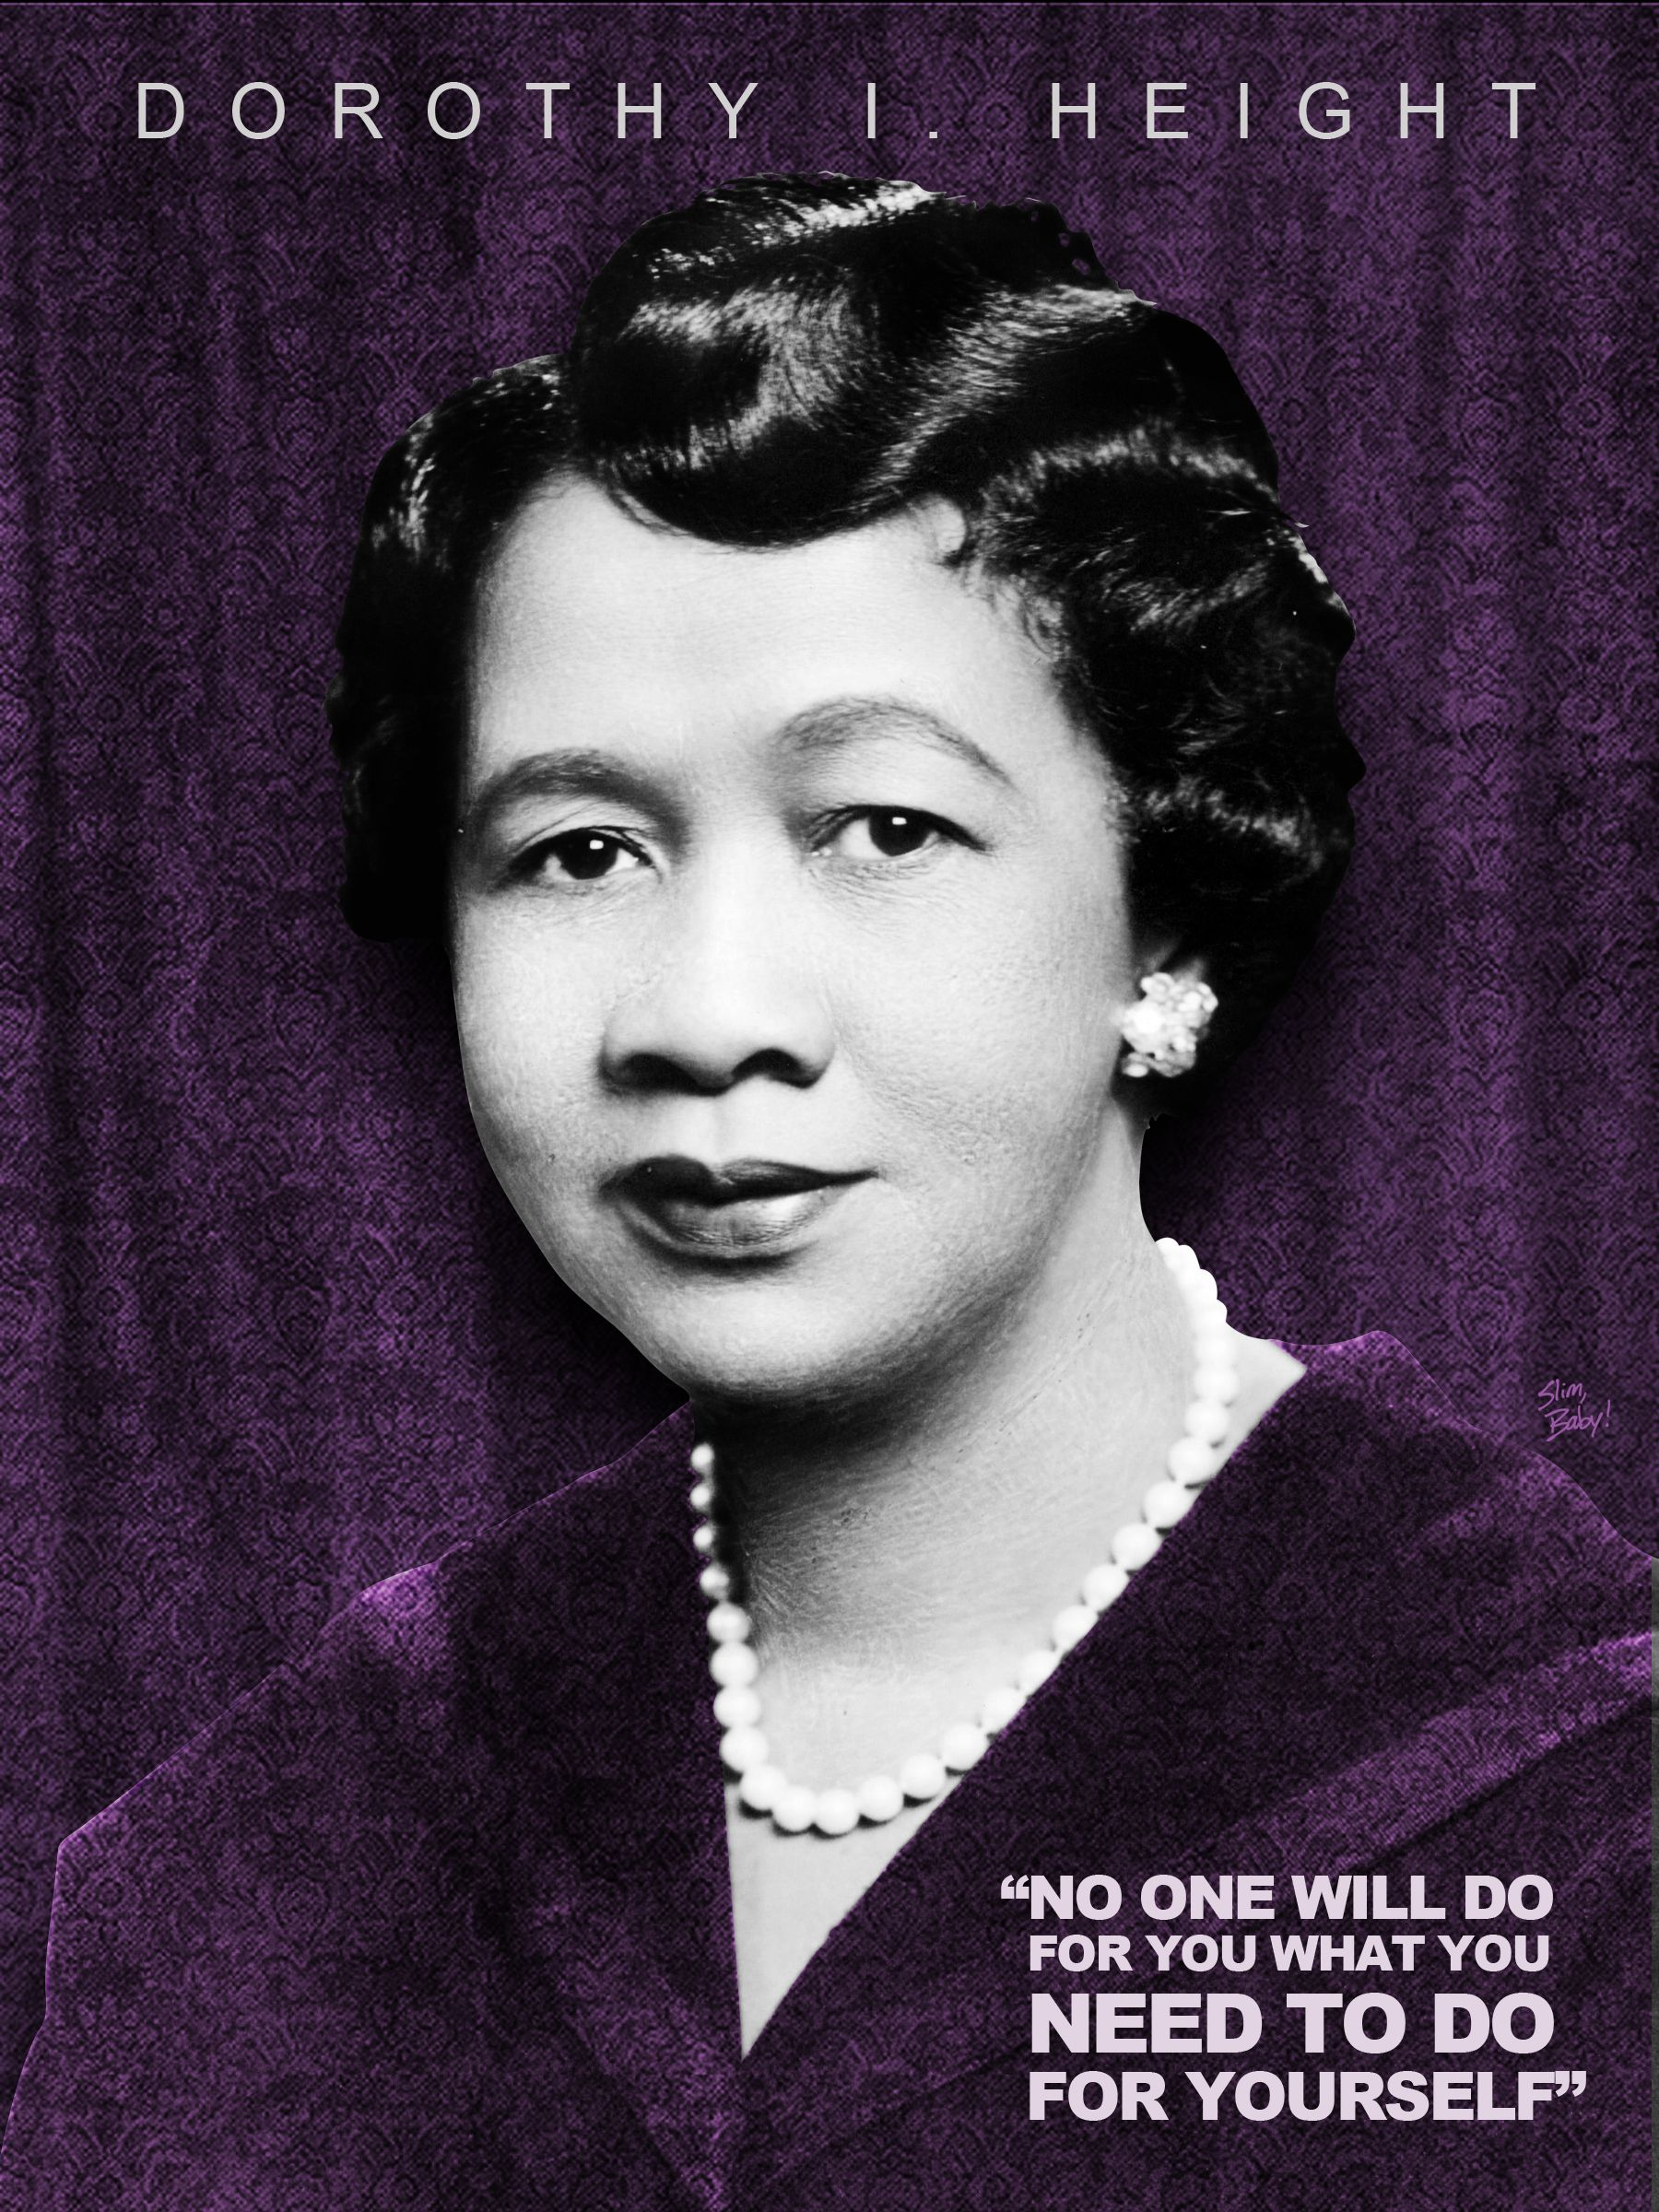 Dorothy I. Height BlackHistoryMonth Tribute Design (2/28